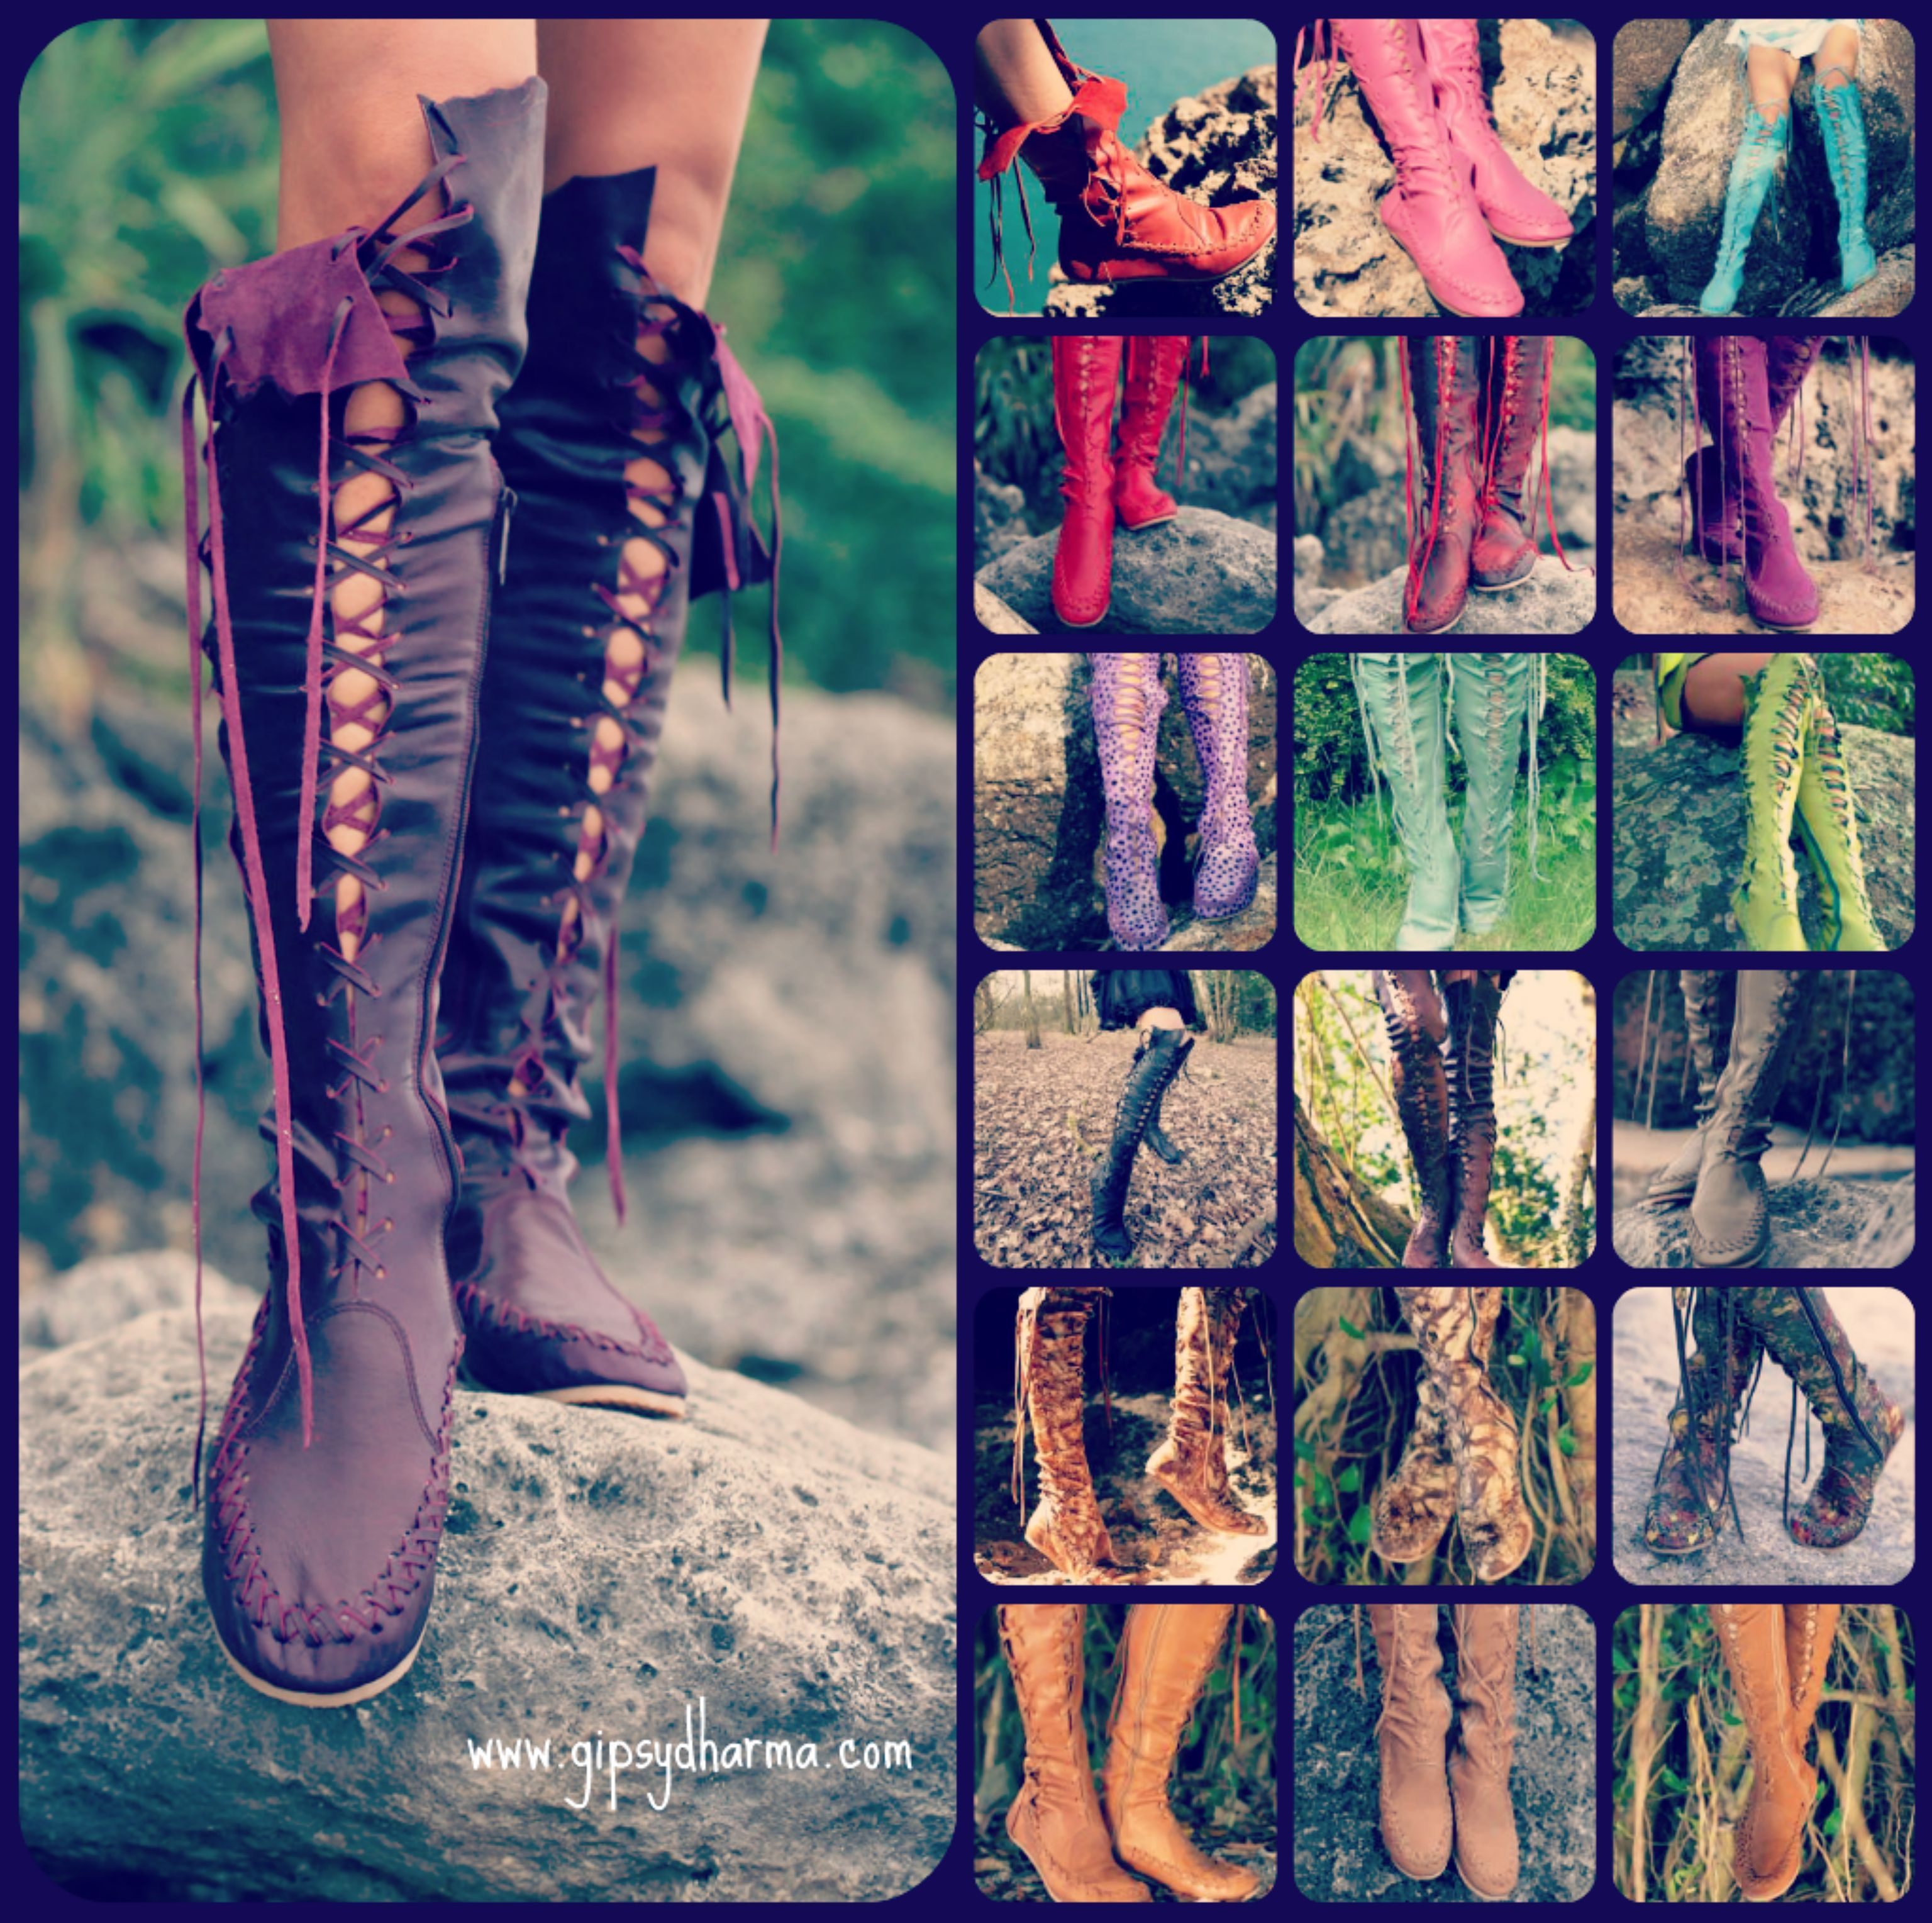 #gipsydharma #handmade #boots #leather #sexy #leatherboots #boho #bohemian #hippie #hippy #tribal #fashion  Feel better about yourself by transforming your image and find clothing or footwear that boost your confidence and makes you feel more positive. Gipsy Dharma have done just that by creating ladies boots and other leather clothing that helps women all over to feel better about themselves and look fabulous.